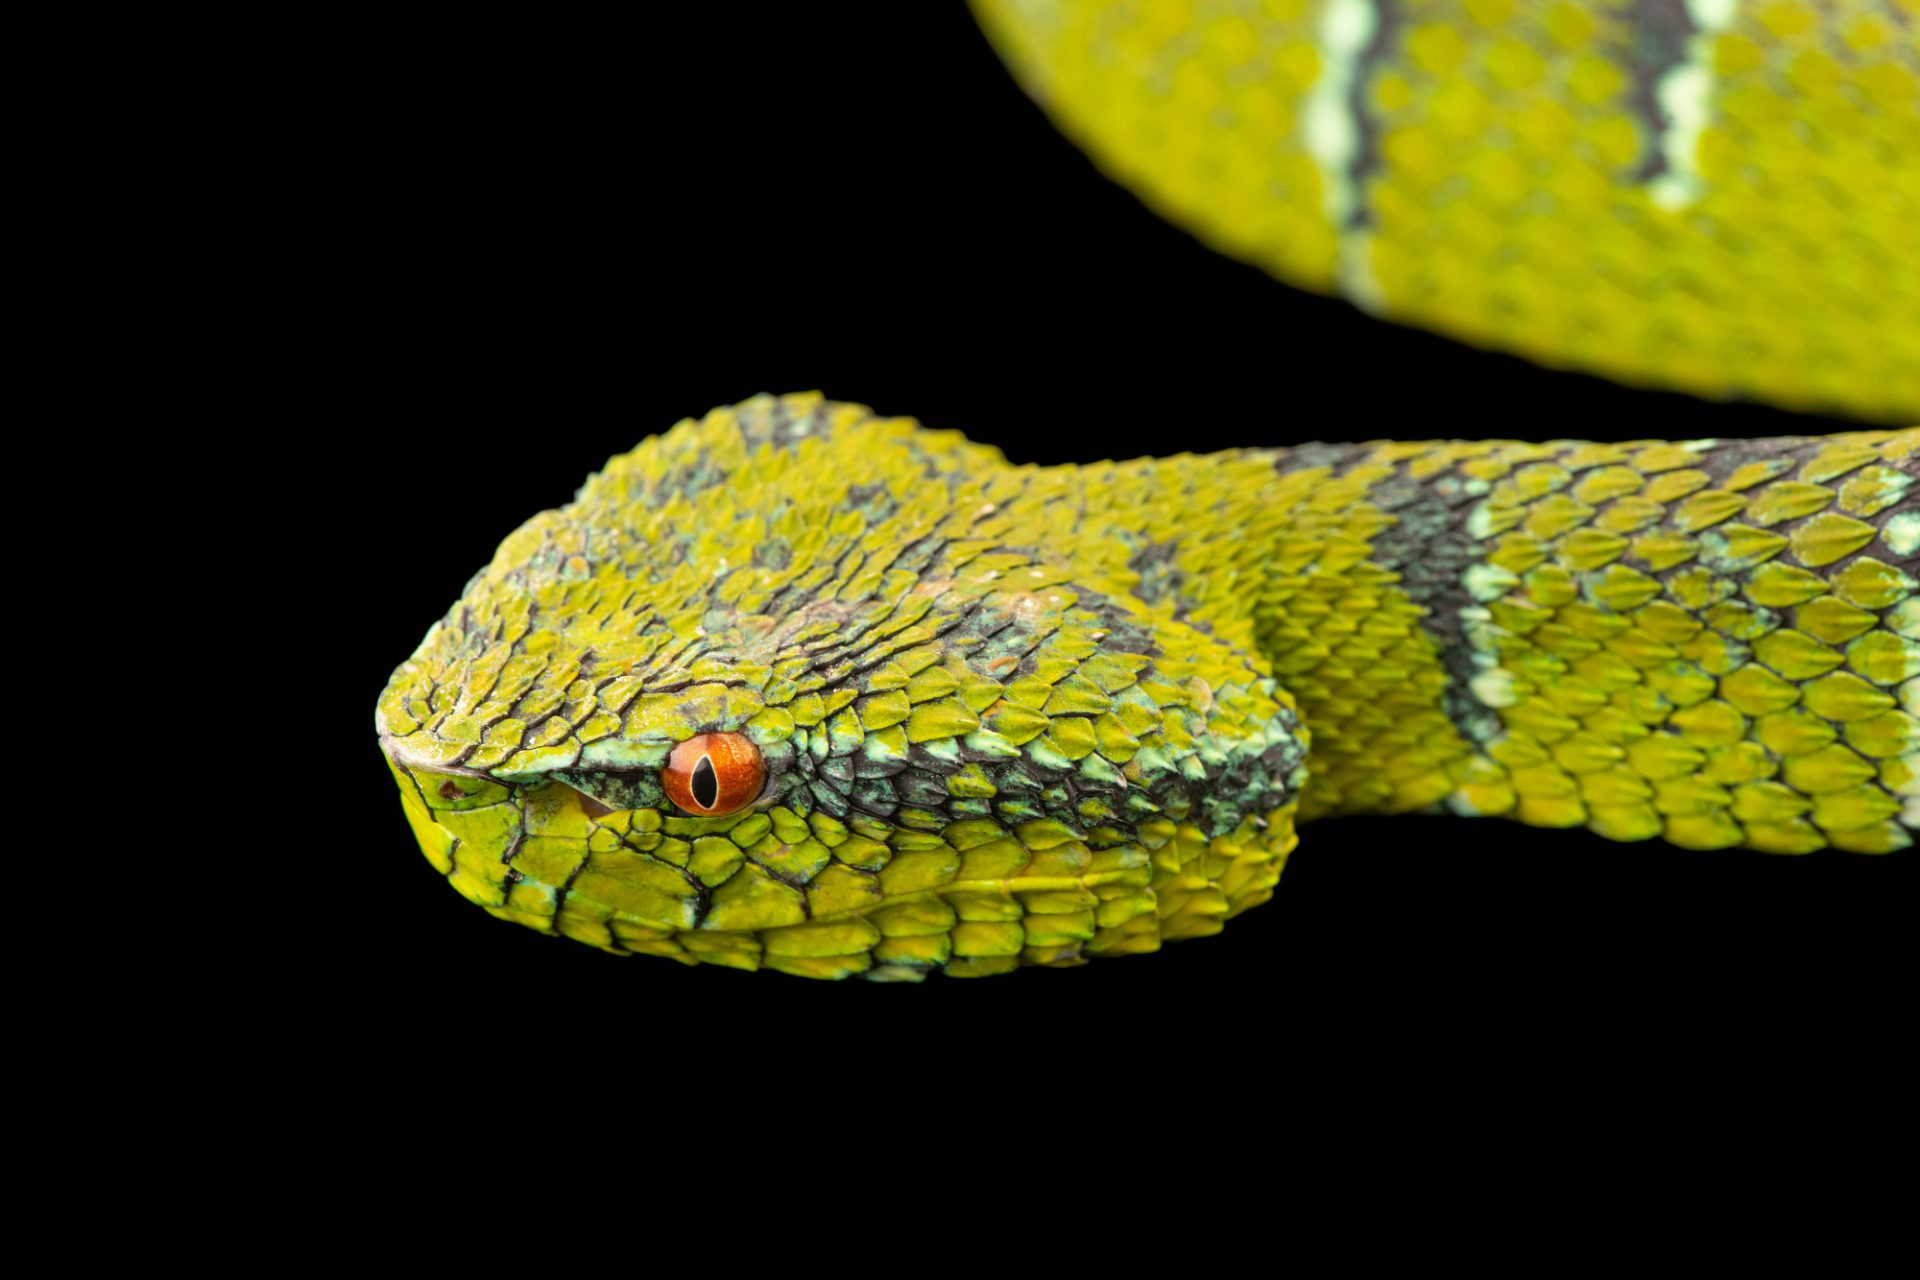 Photo: South temple pit viper (Tropidolaemus philippensis) at Davao Crocodile Park.